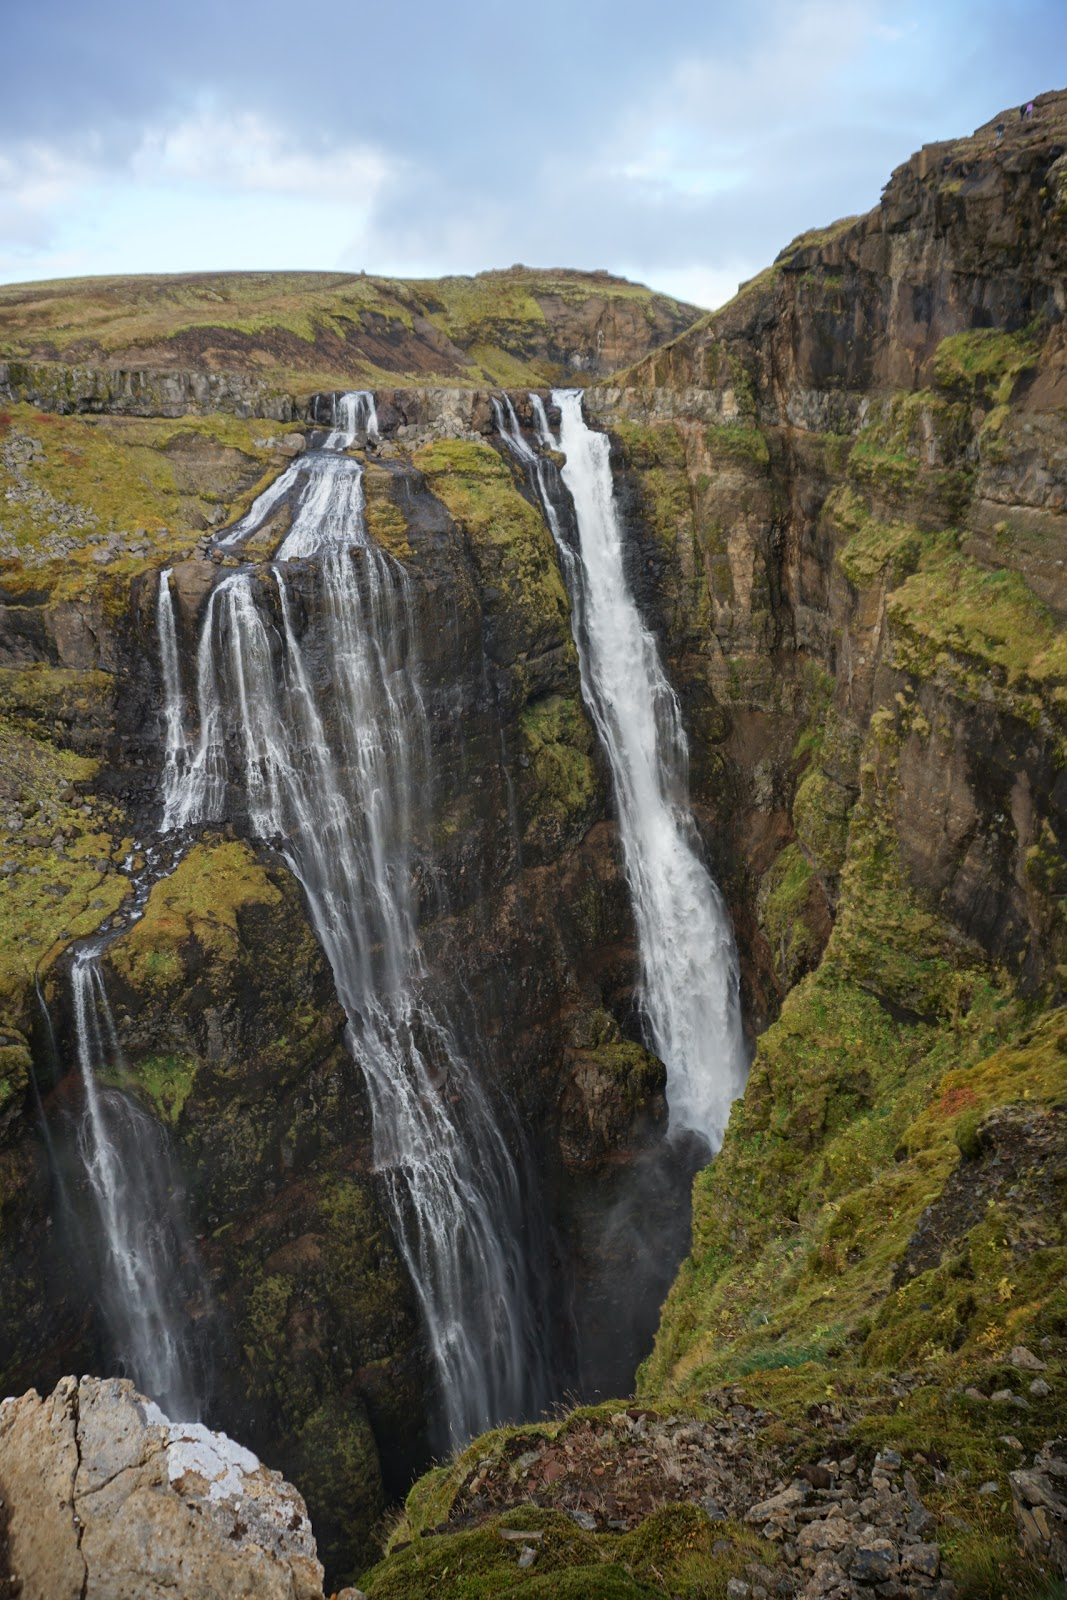 October Fall Wallpaper Hiking To Glymur Iceland S Second Tallest Waterfall